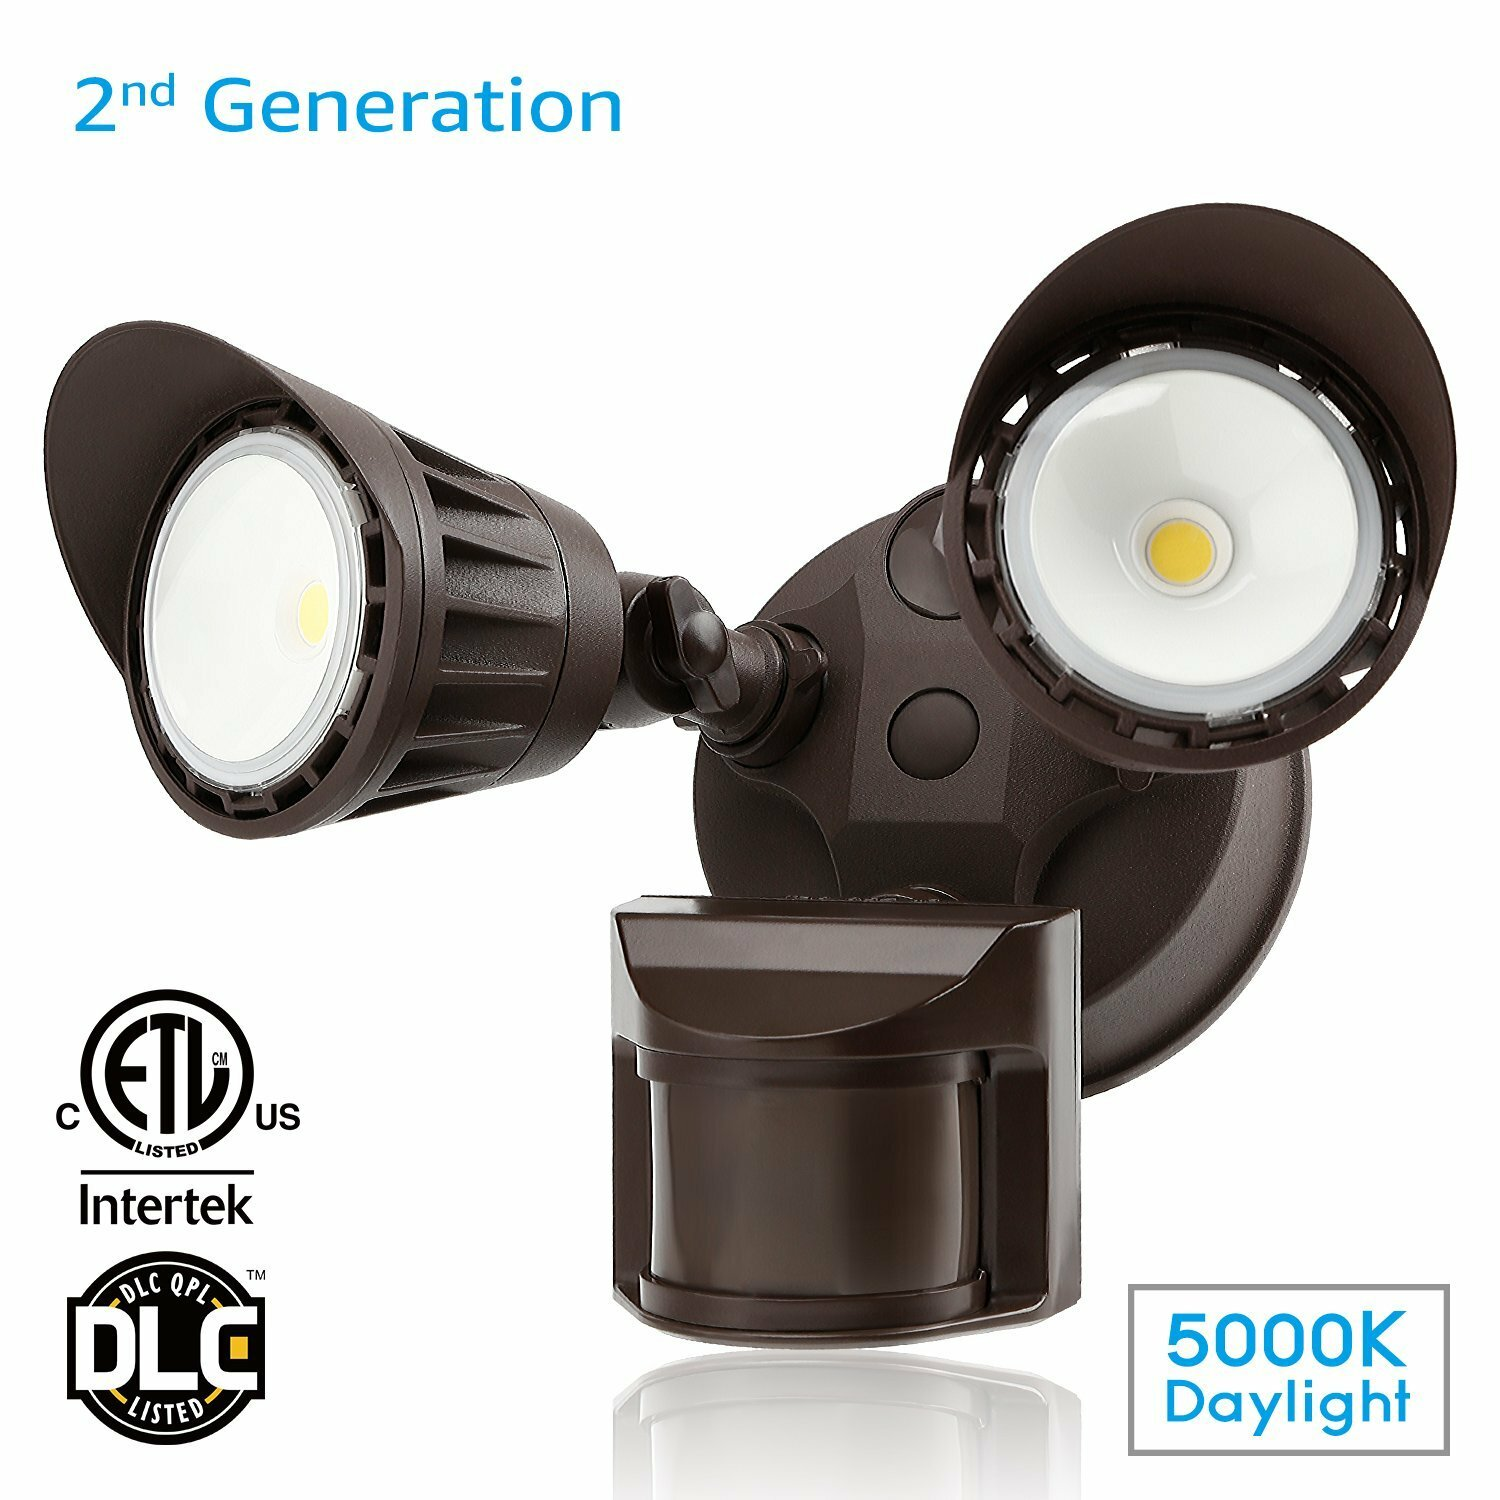 Home & Garden Plug In Wall Automatic Light With Dusk To Dawn Sensor, Special Section Led Sensor Night Light Night Lights